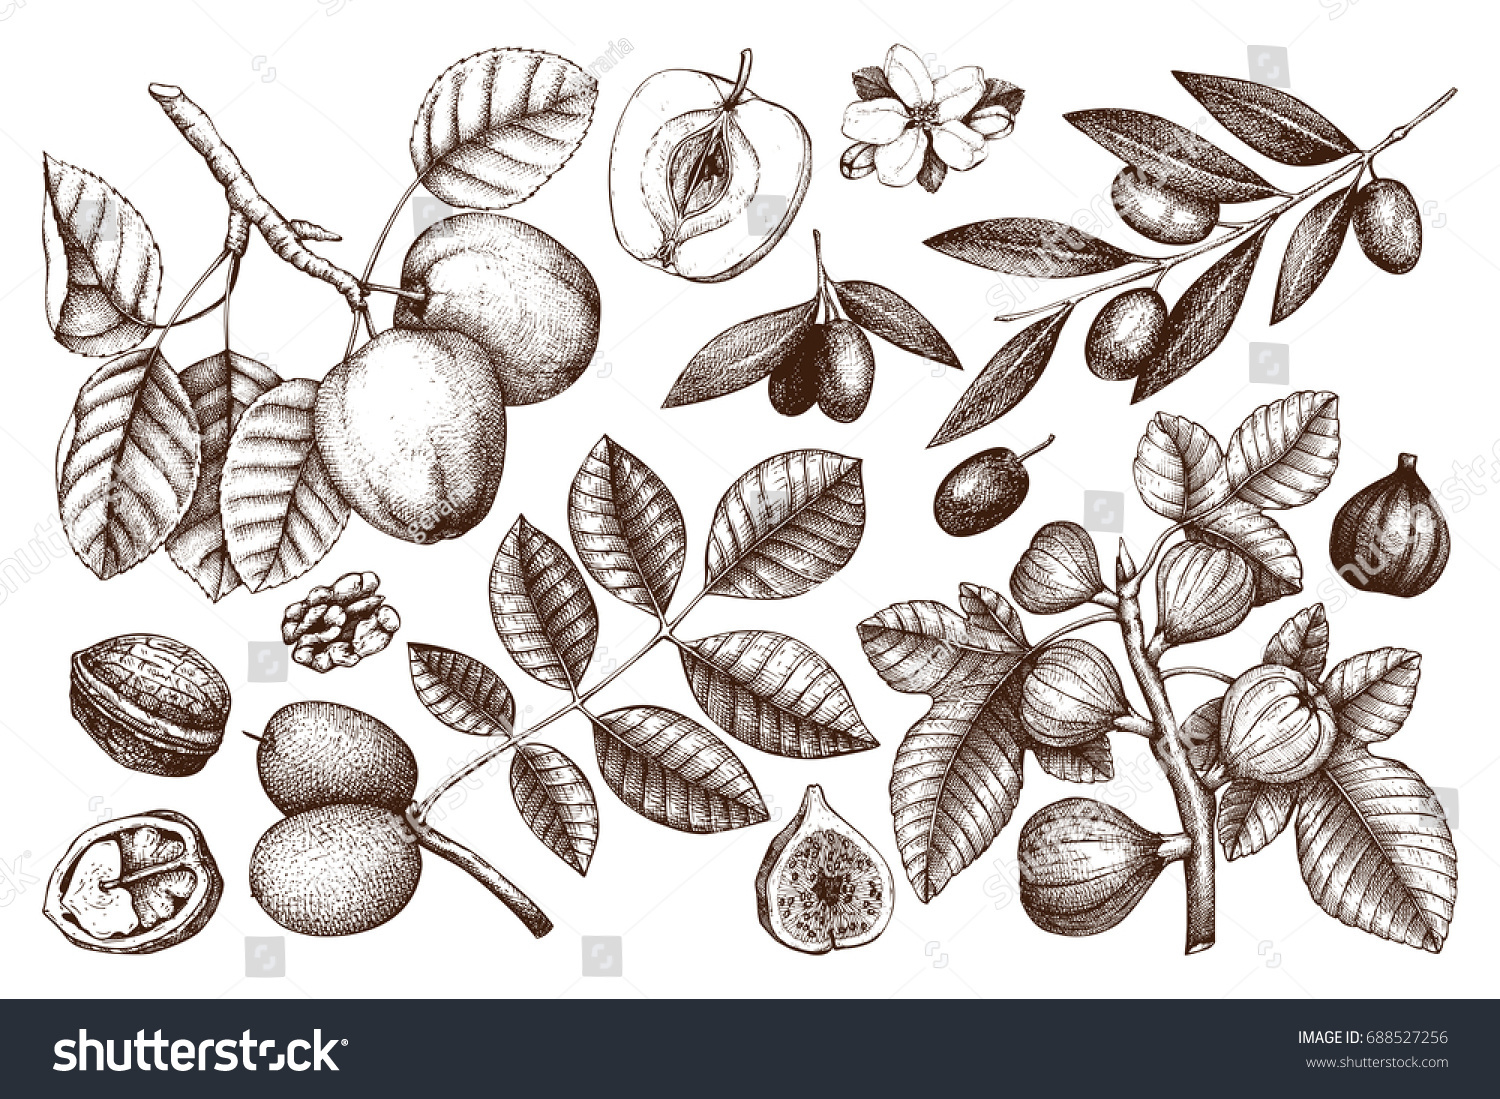 Collection of hand drawn trees illustration vintage set of leaves fruits seeds nuts flowers sketch white background botanical garden drawing